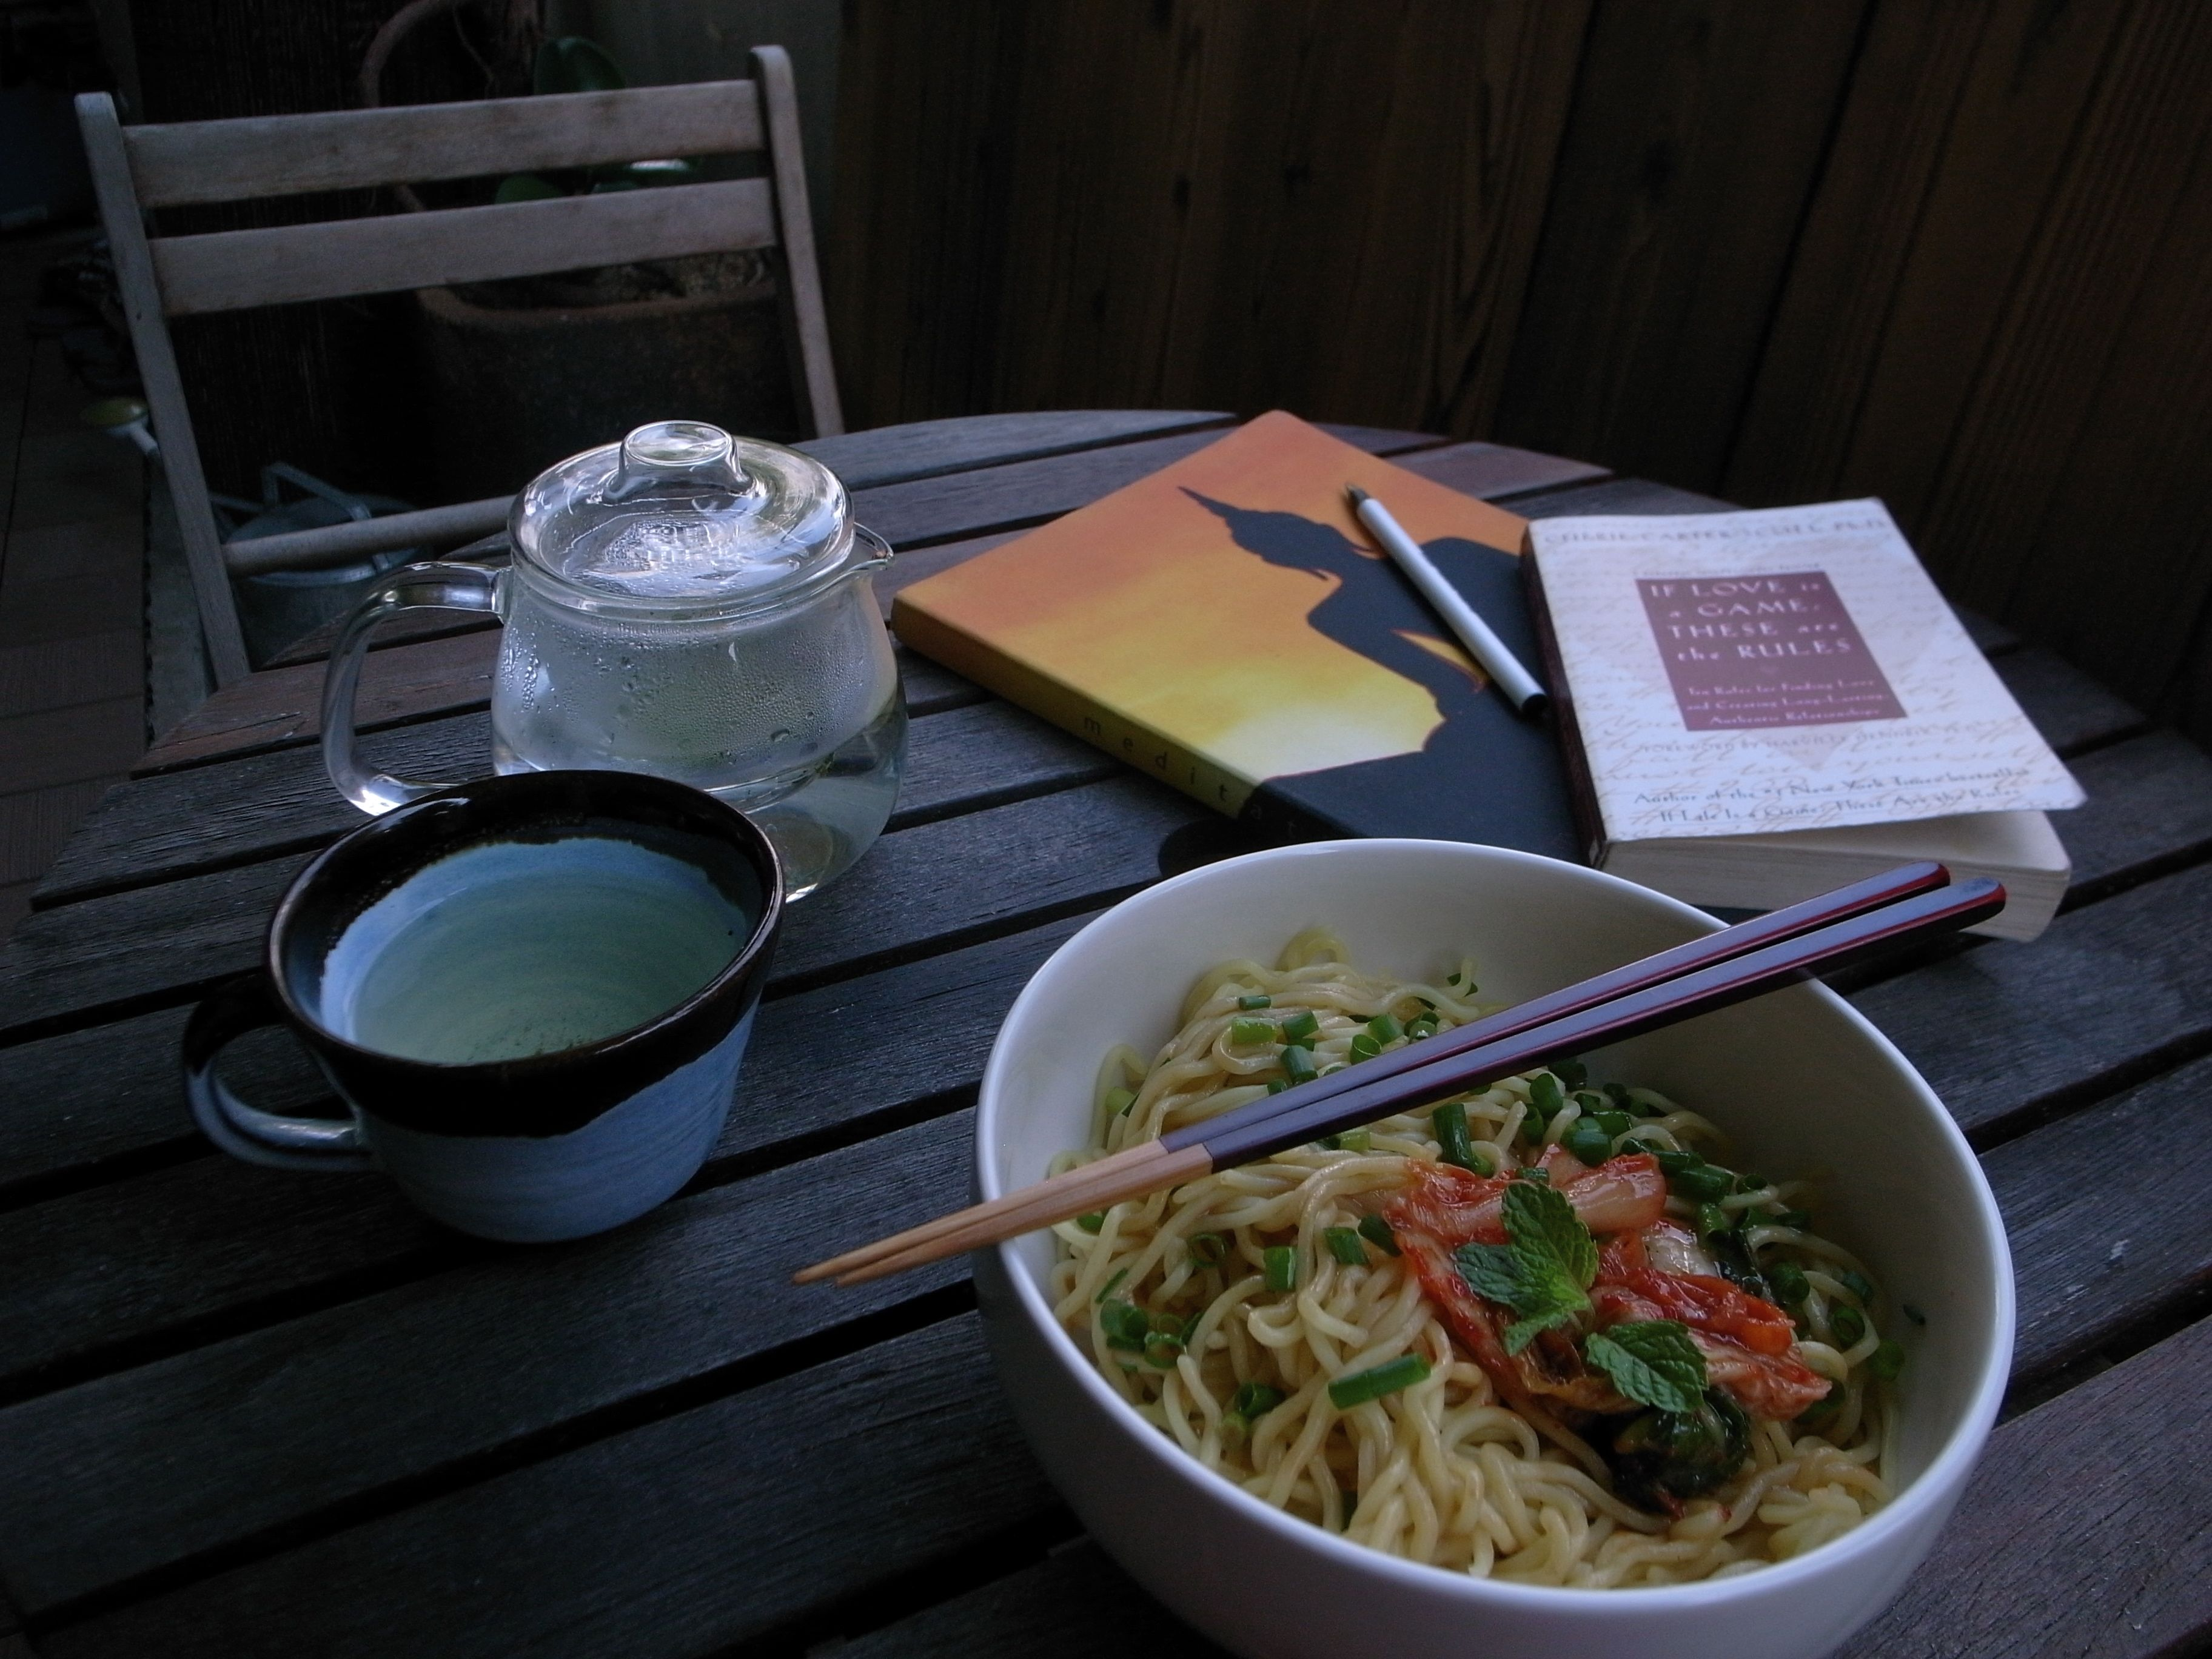 Cold Chinese egg noodles with a goma dare (sesame sauce) served with kimchi, green onions and some mint leaves- the mint leaves gave it a lovely ending.    Next time I make this I am going to try a peanut sesame sauce